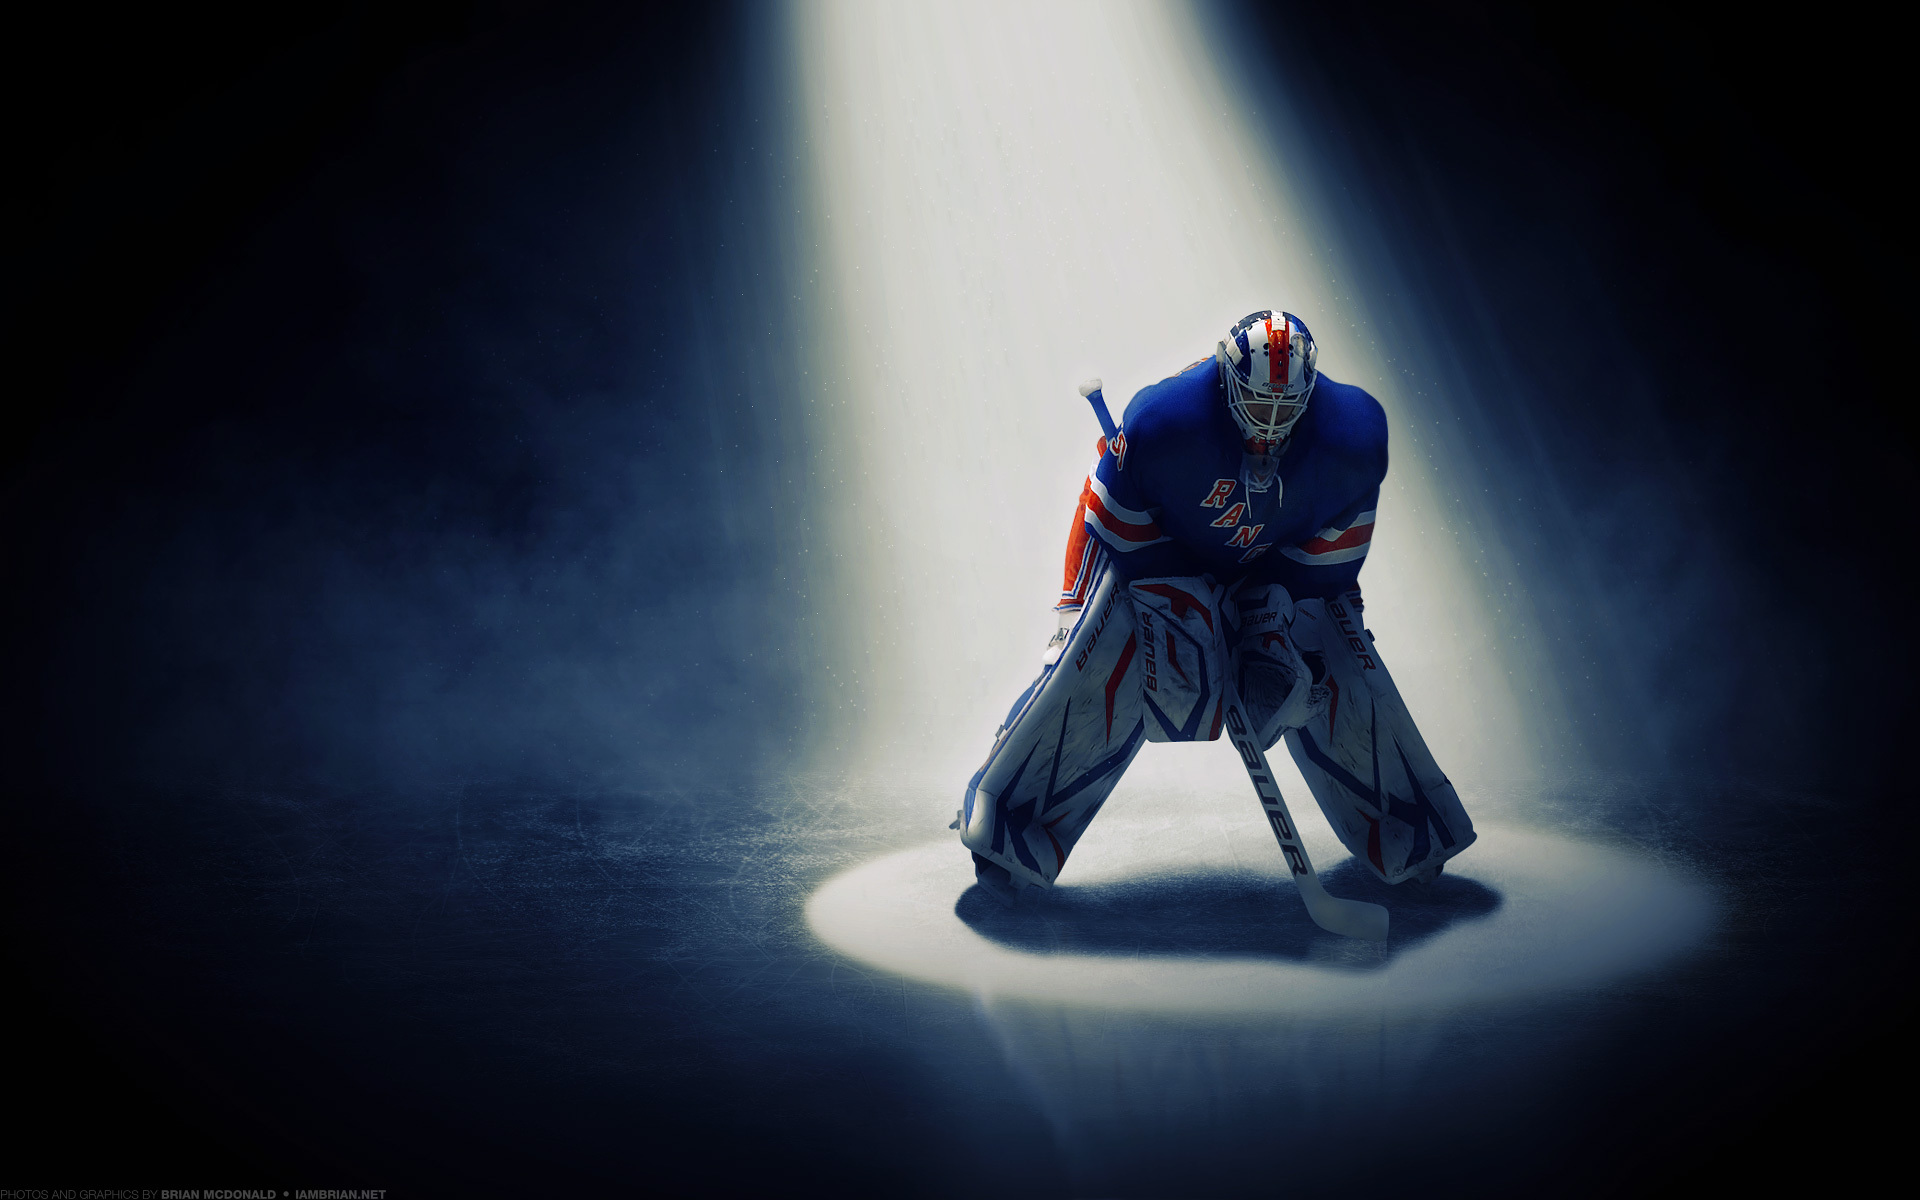 Henrik Lundqvist wallpapers and images   wallpapers pictures photos 1920x1200